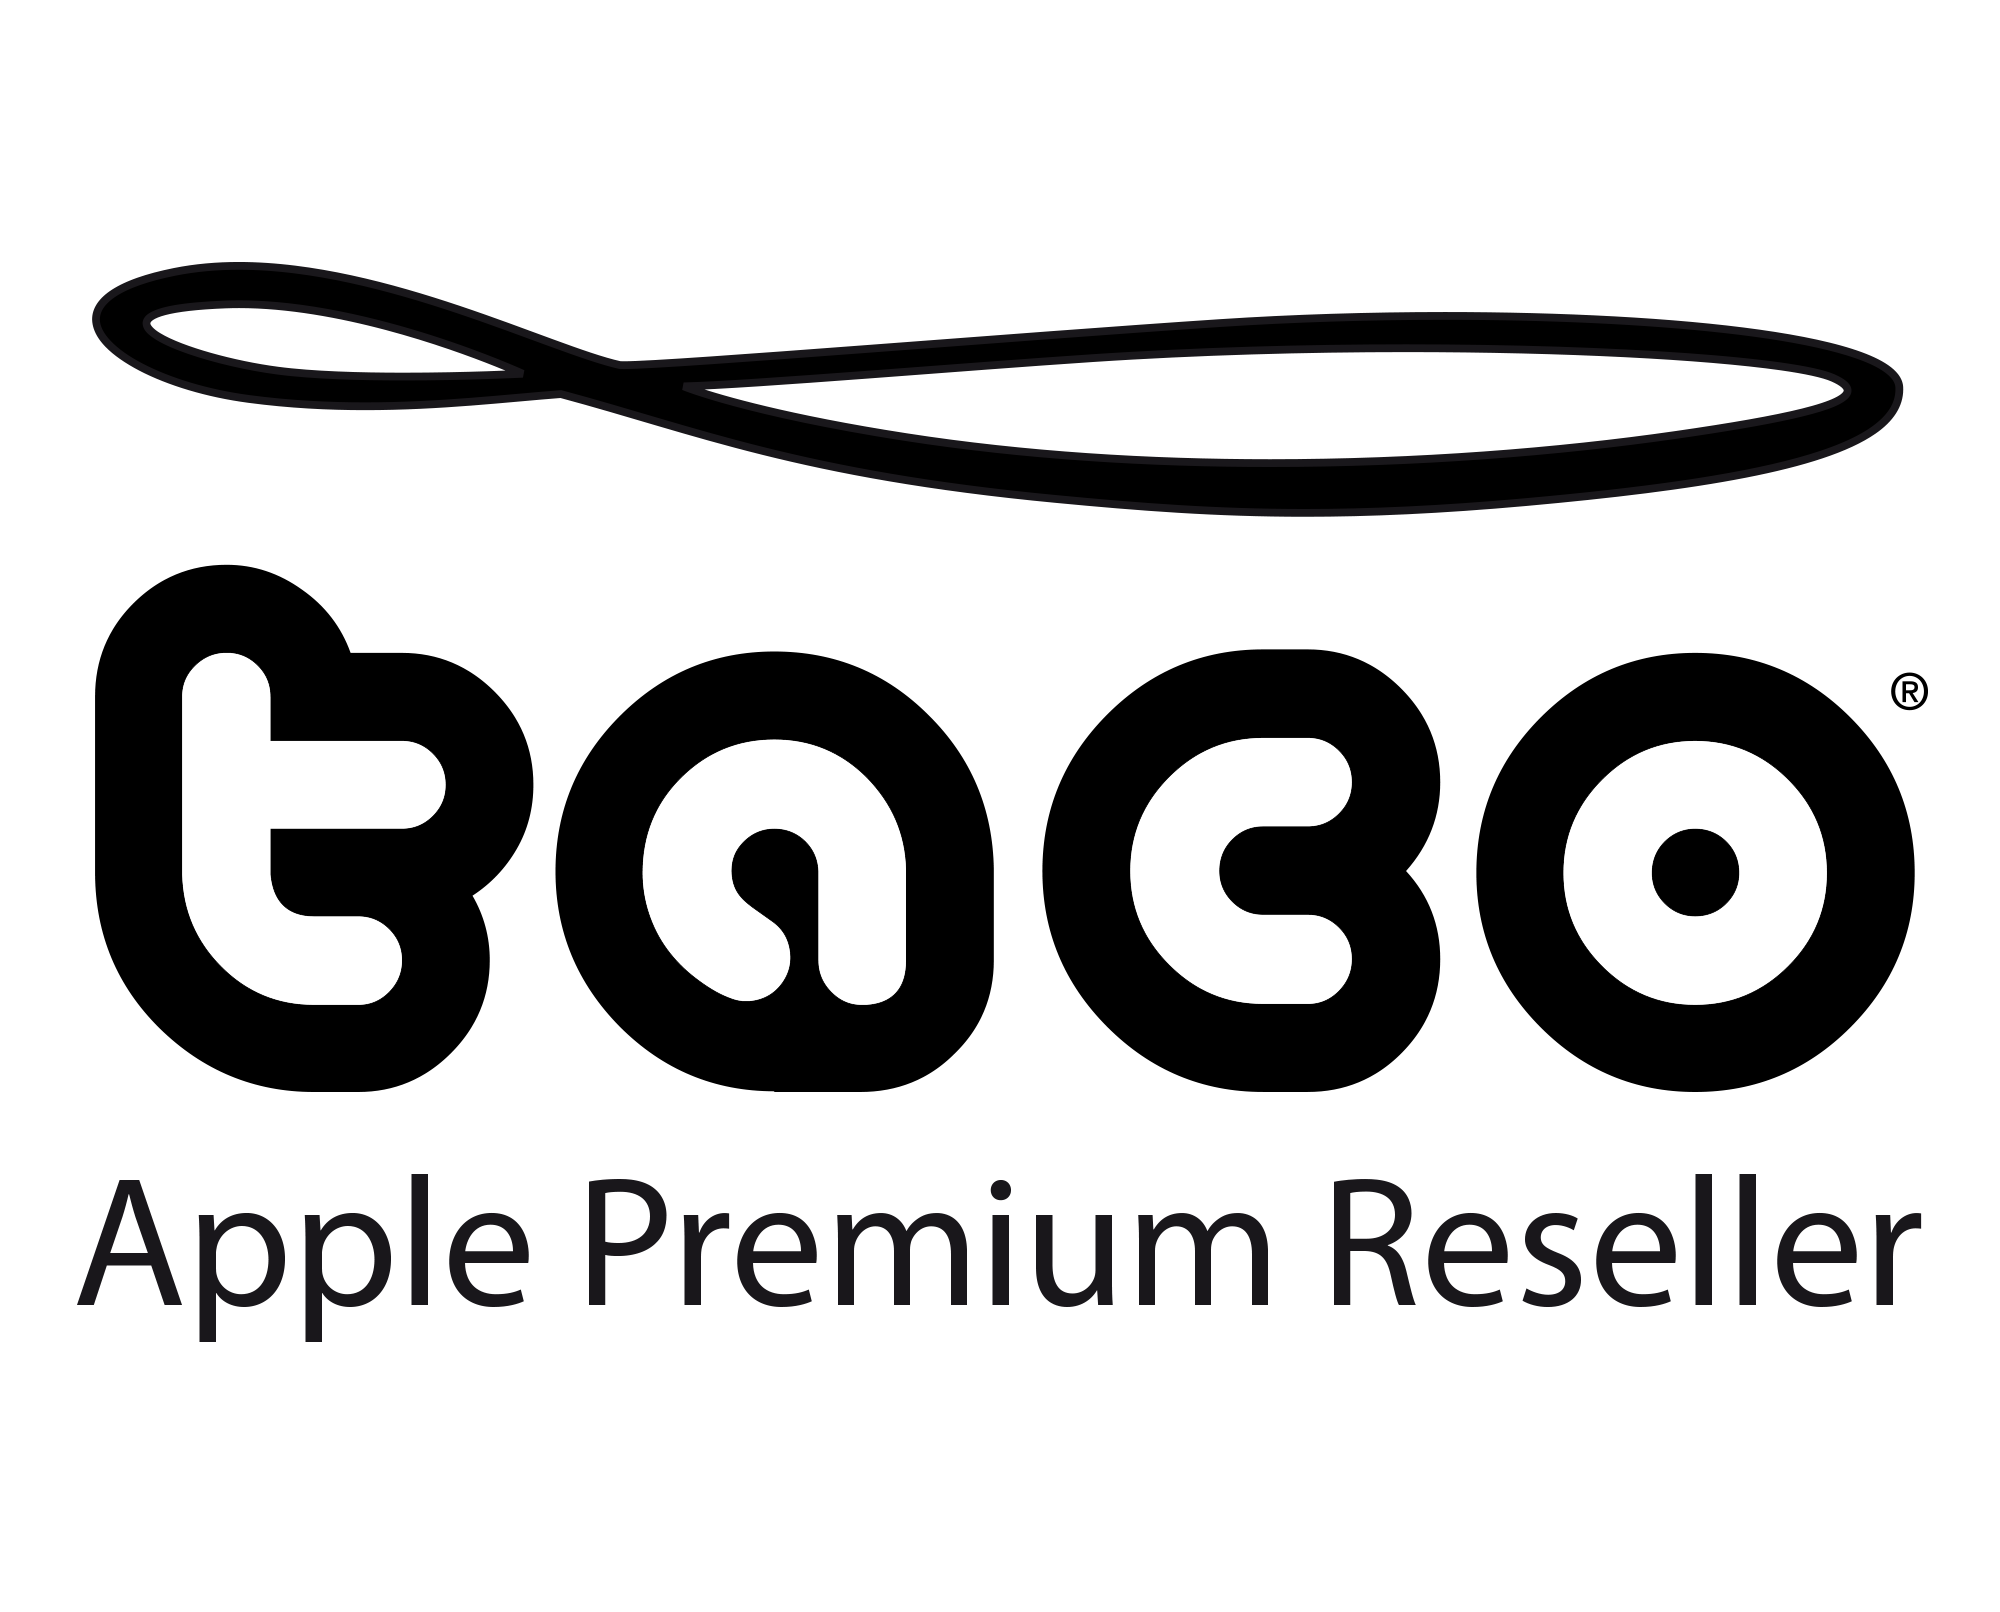 Tacosystems votre Expert Apple